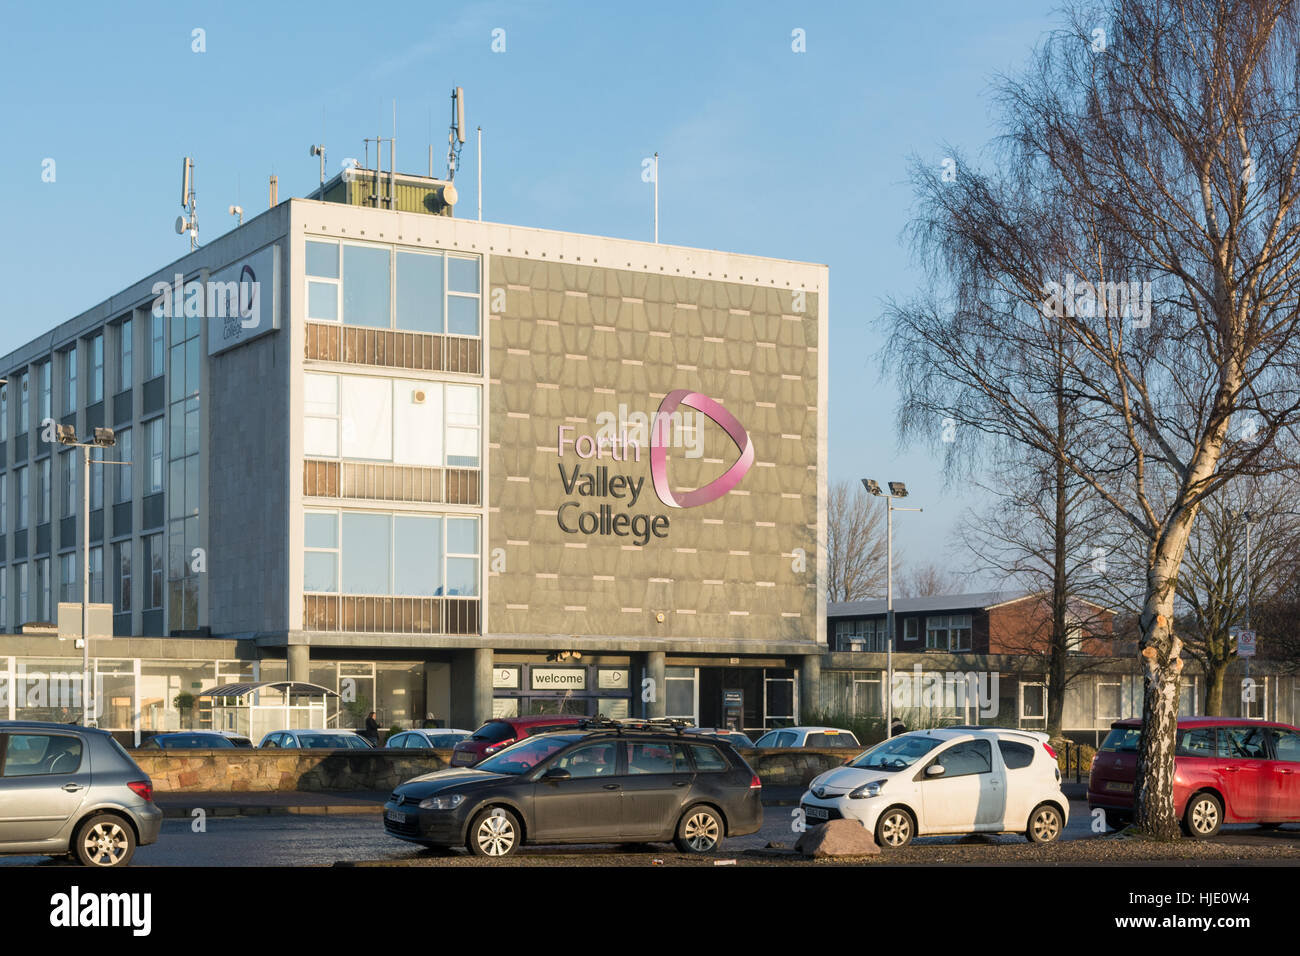 Forth Valley College, Falkirk, Scotland, UK - Stock Image